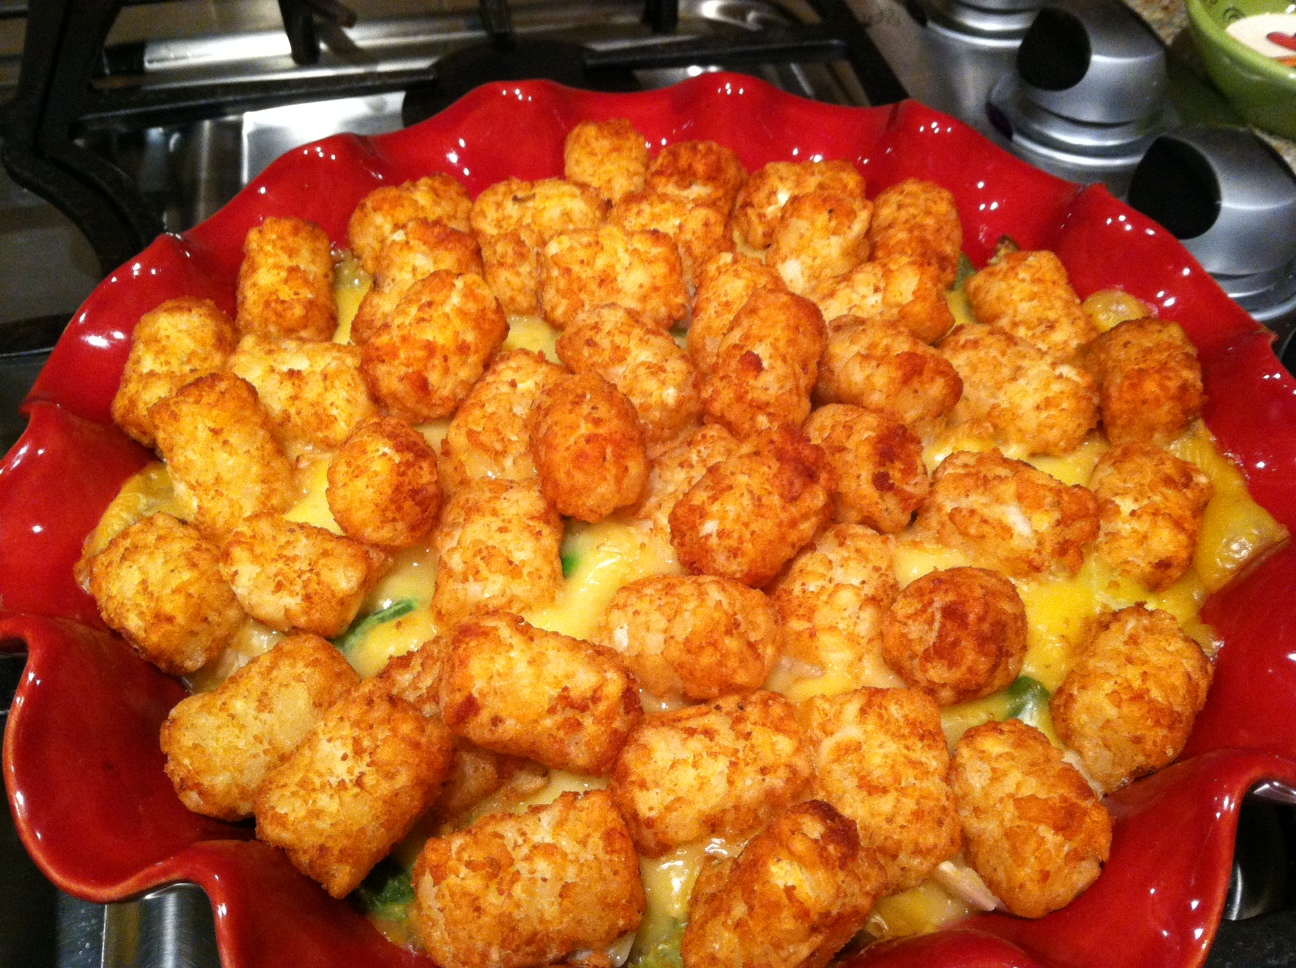 Cookin' With Whatcha Got: Easy Tater Tot Casserole